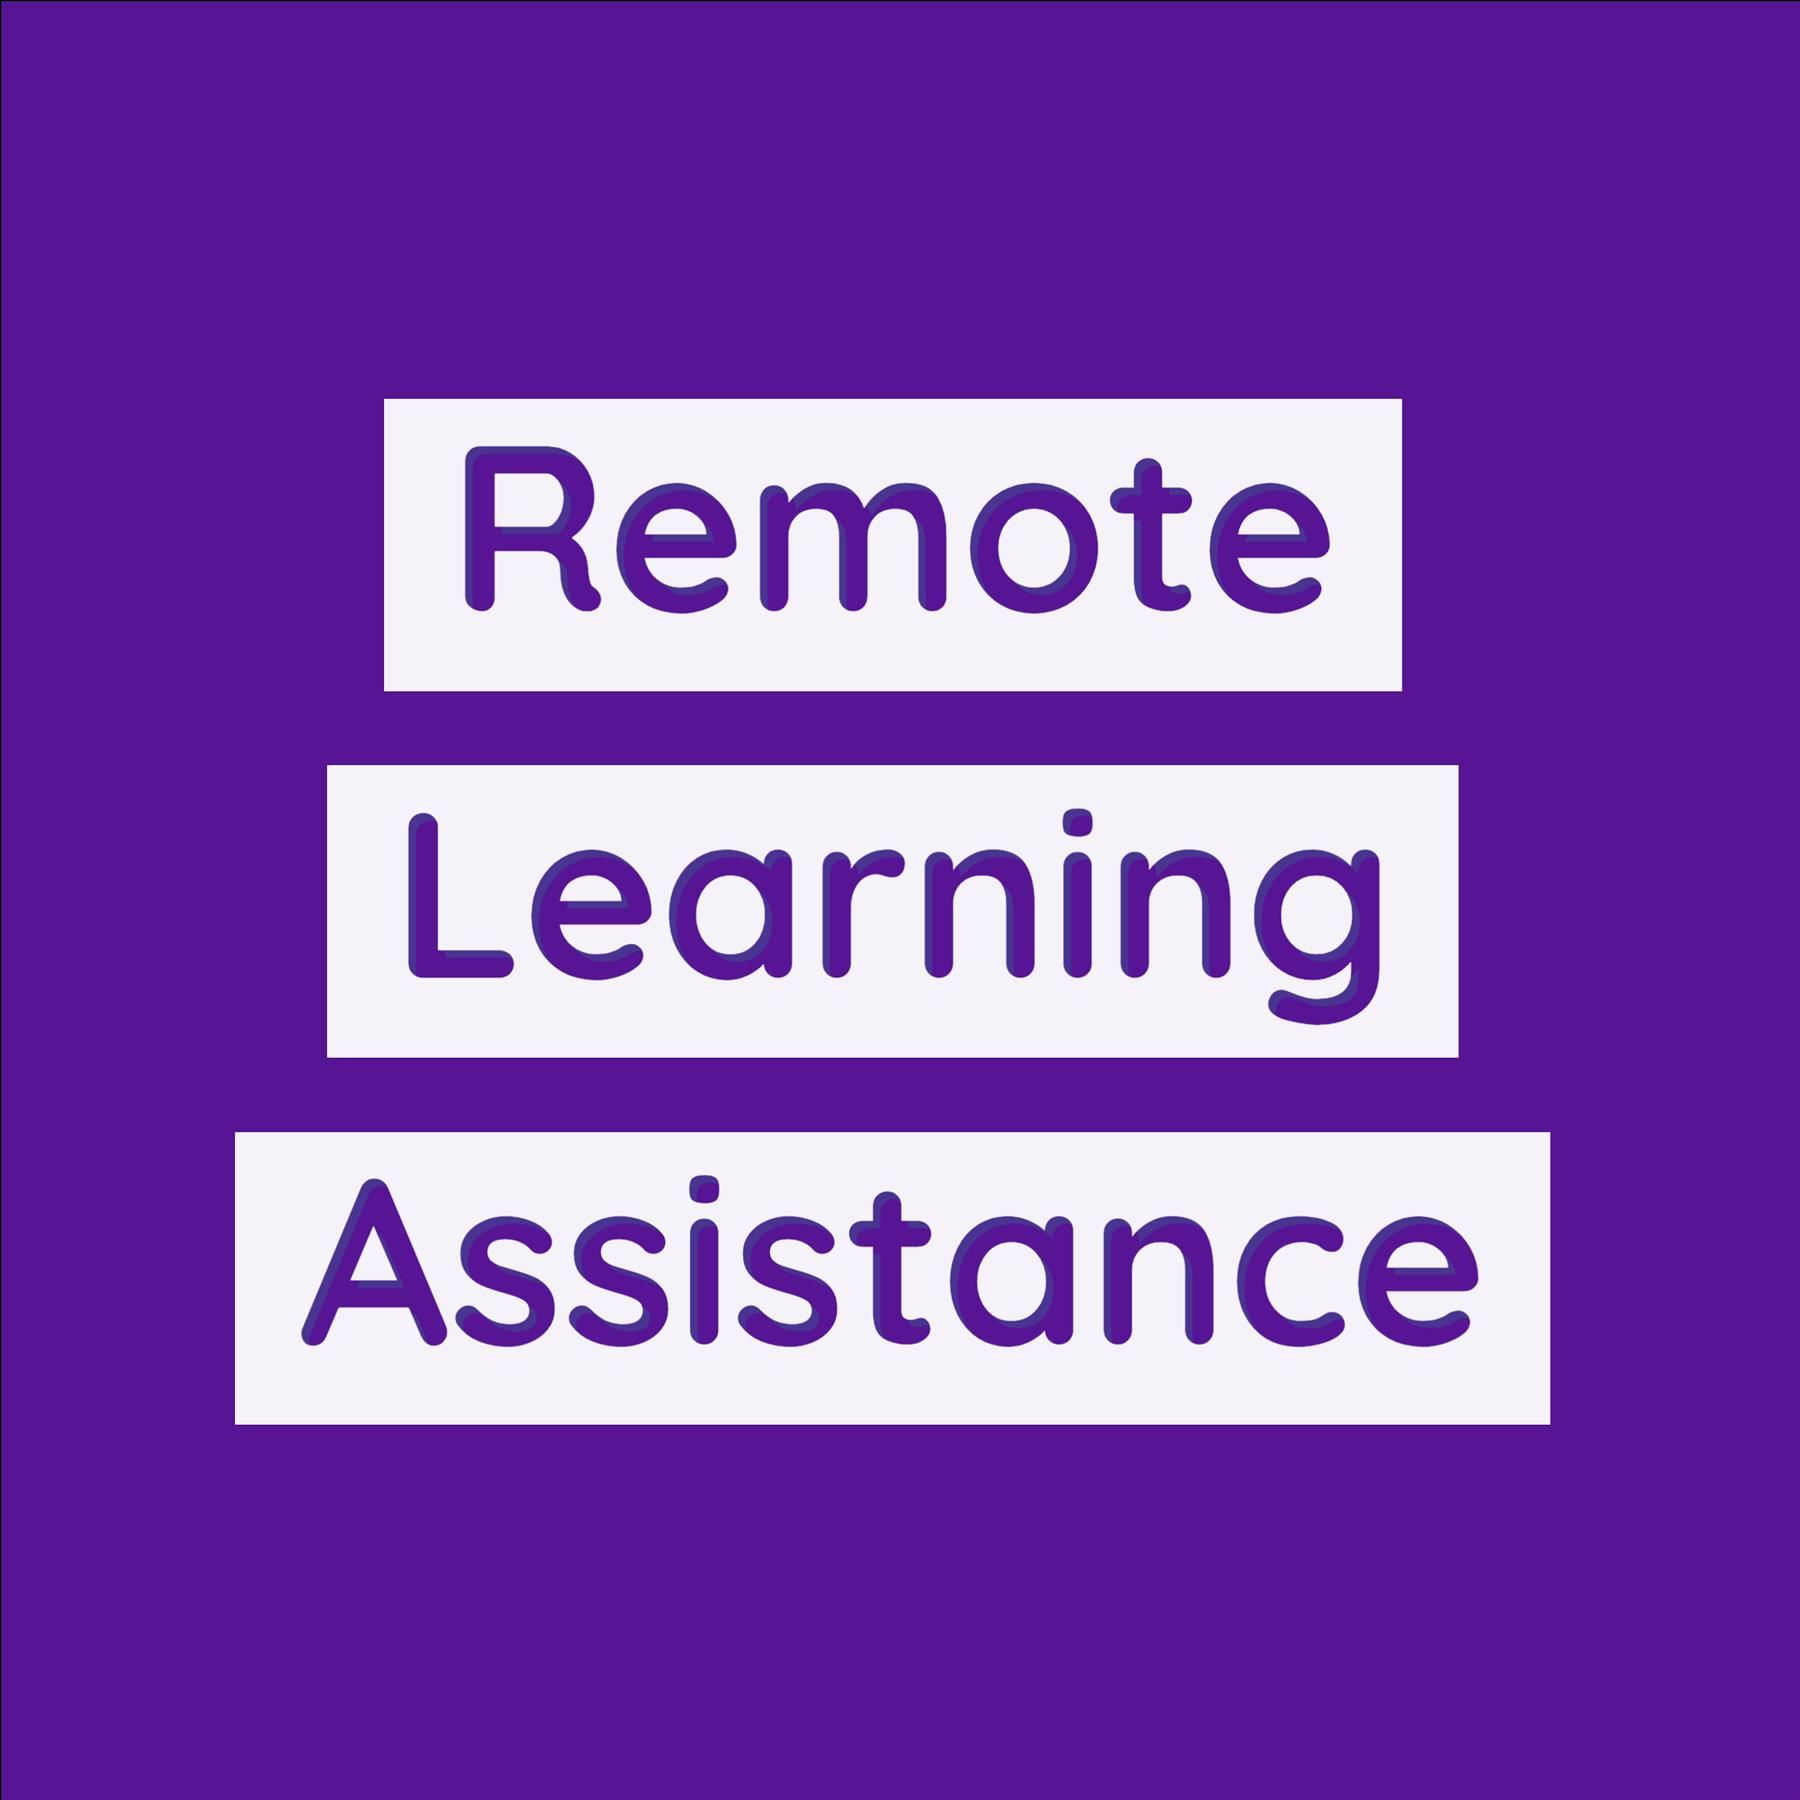 Remote Learning Assistance